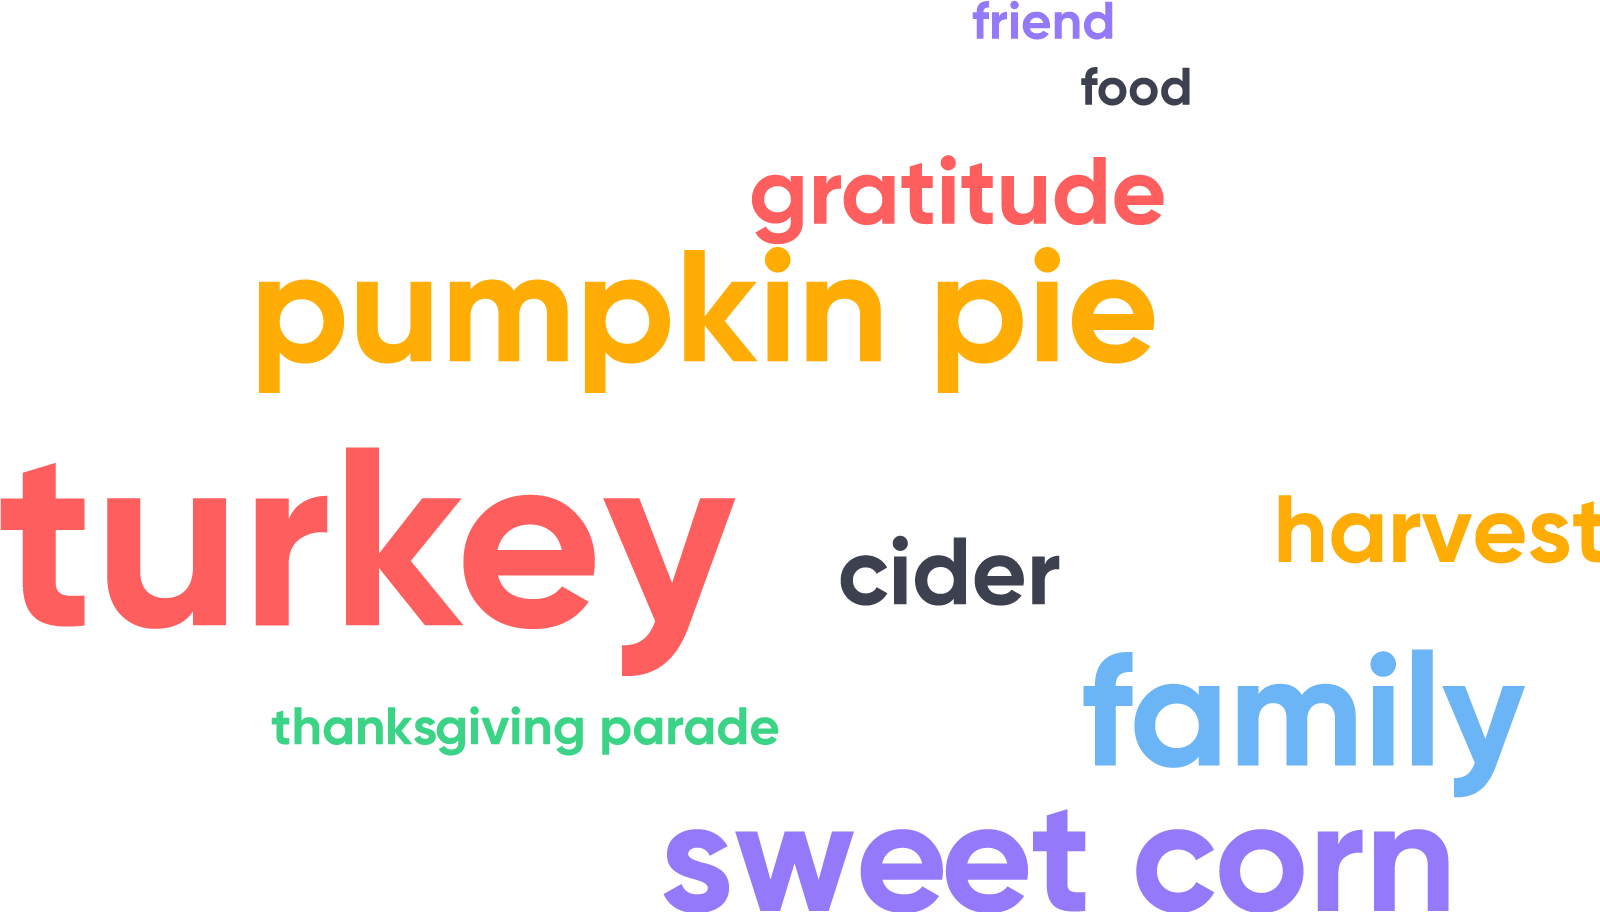 Thanksgiving topics for marketing campaigns